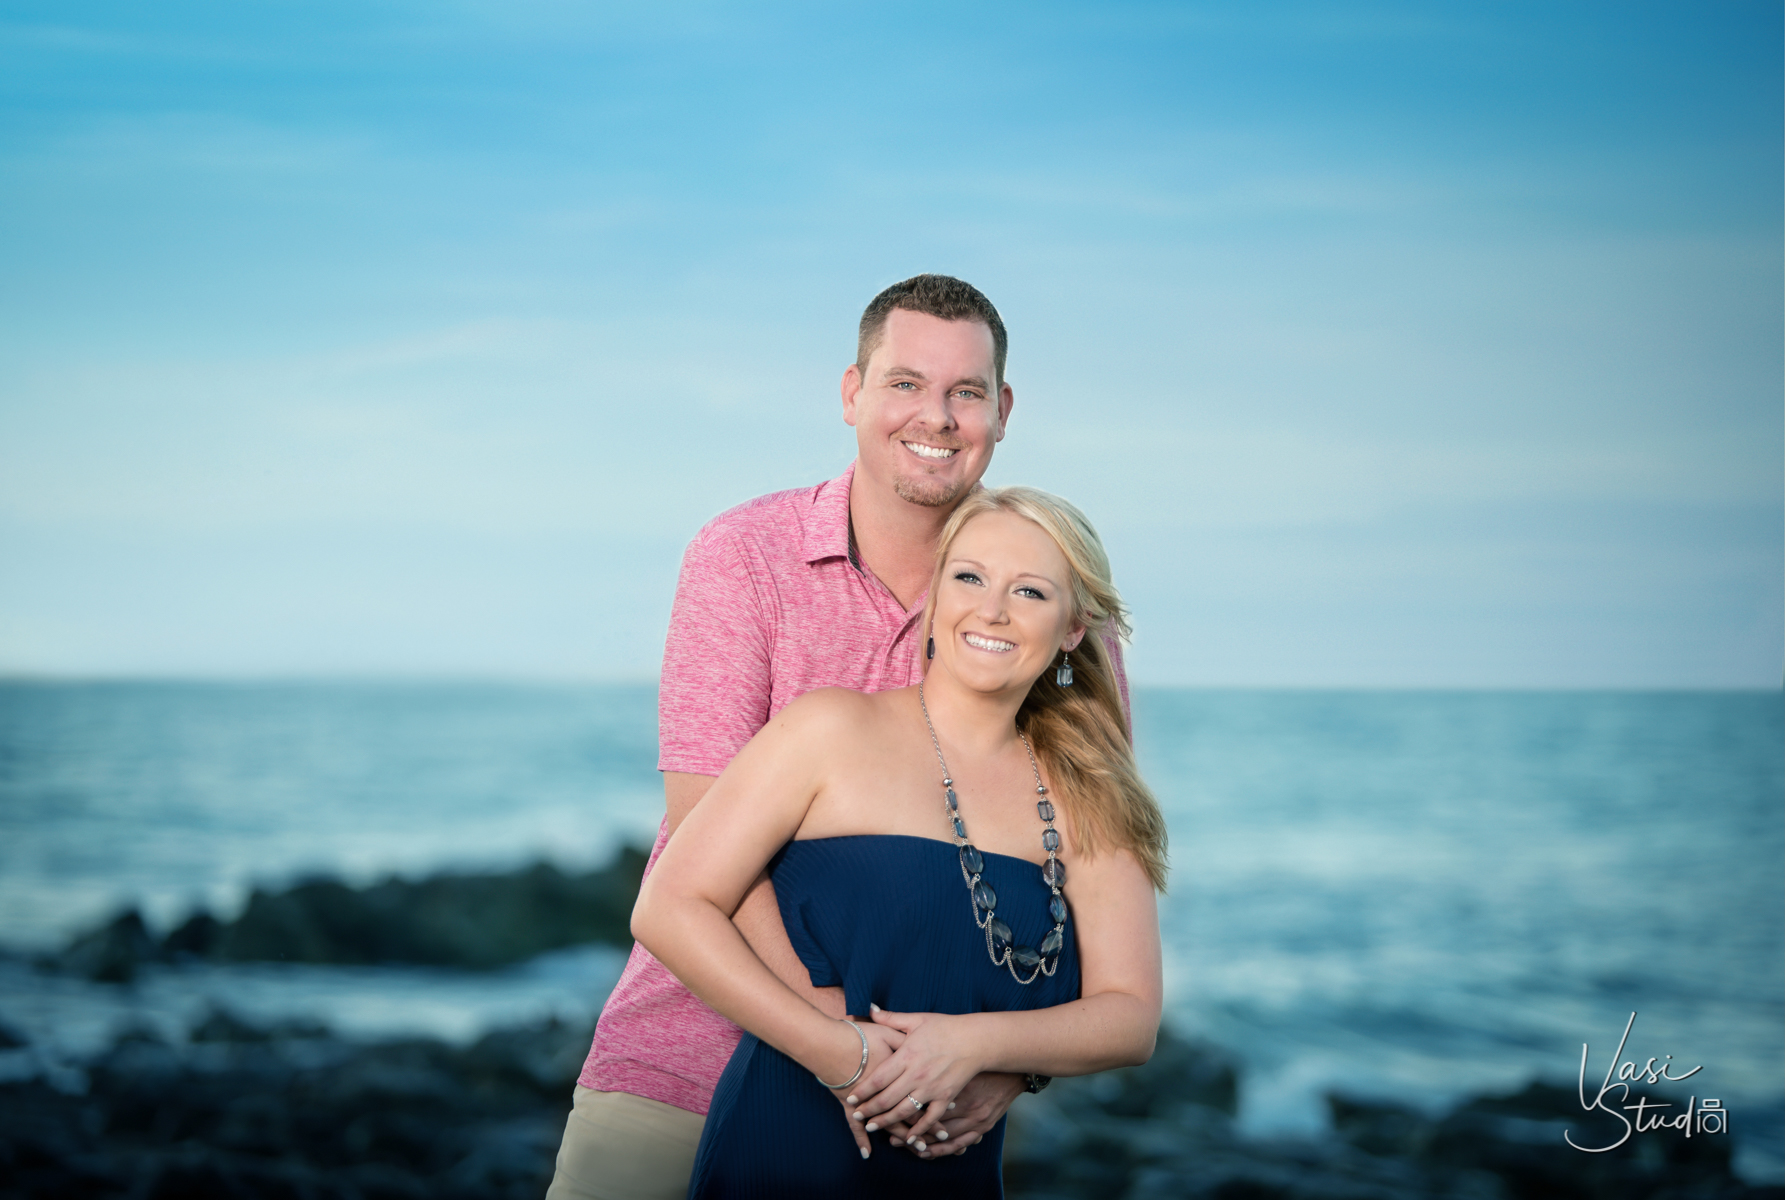 Destination engagement photos in South Florida. Call us today at 561.307.9875 to reserve your session.